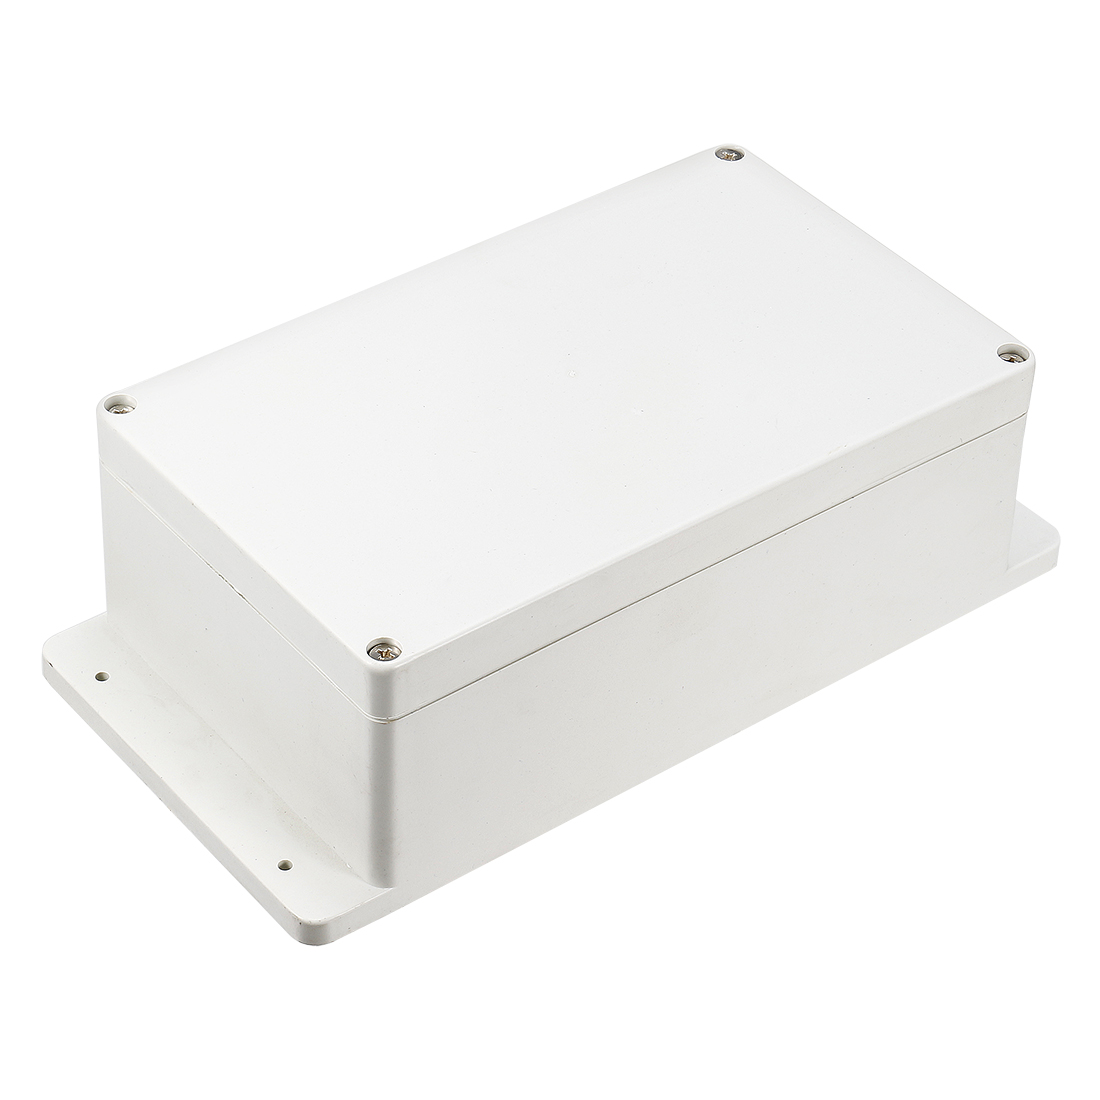 "7.87"" x 4.72"" x 2.95""(200mmx120mmx75mm) ABS Junction Box Universal Project Enclosure"